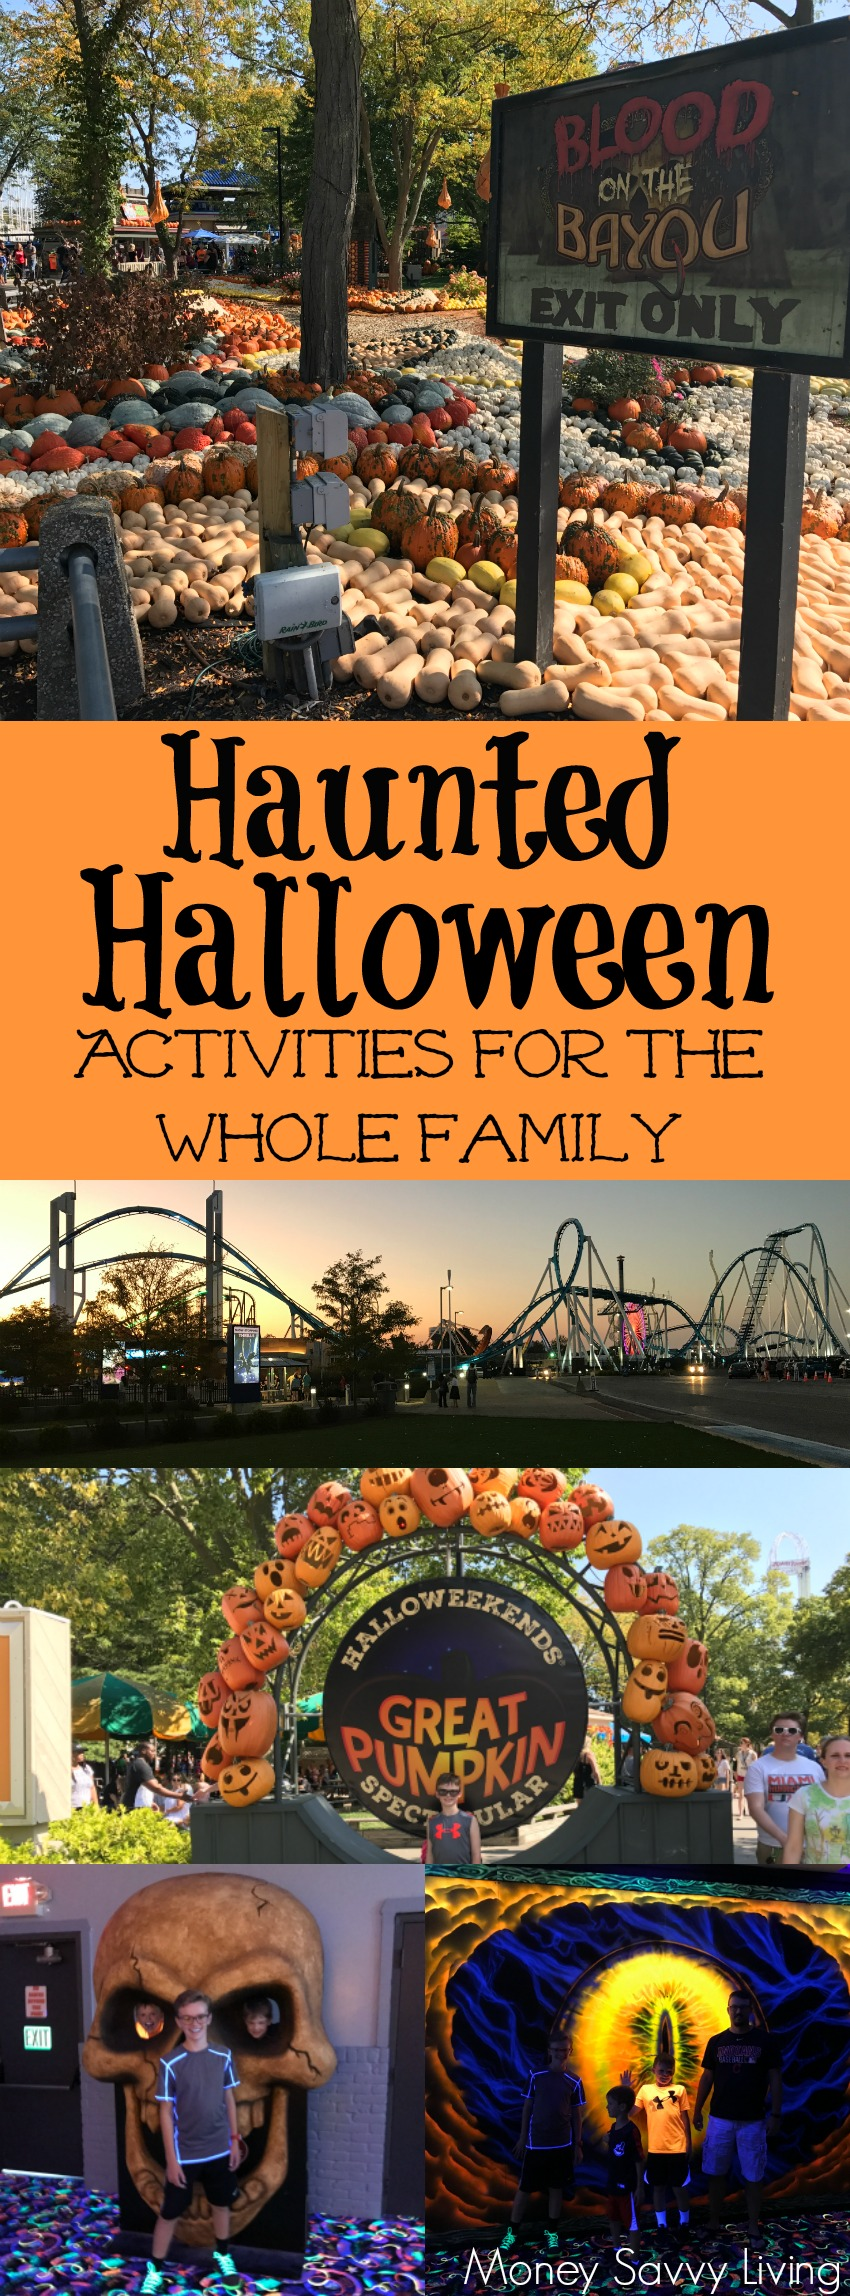 Your family will love these haunted and not-so-scary Halloween activities! Halloween Fun for the Whole Family! #Halloweekends #CedarPoint #GhostlyManor #Sandusky #LakeErieLove #shoresandislands #halloween #familyfun